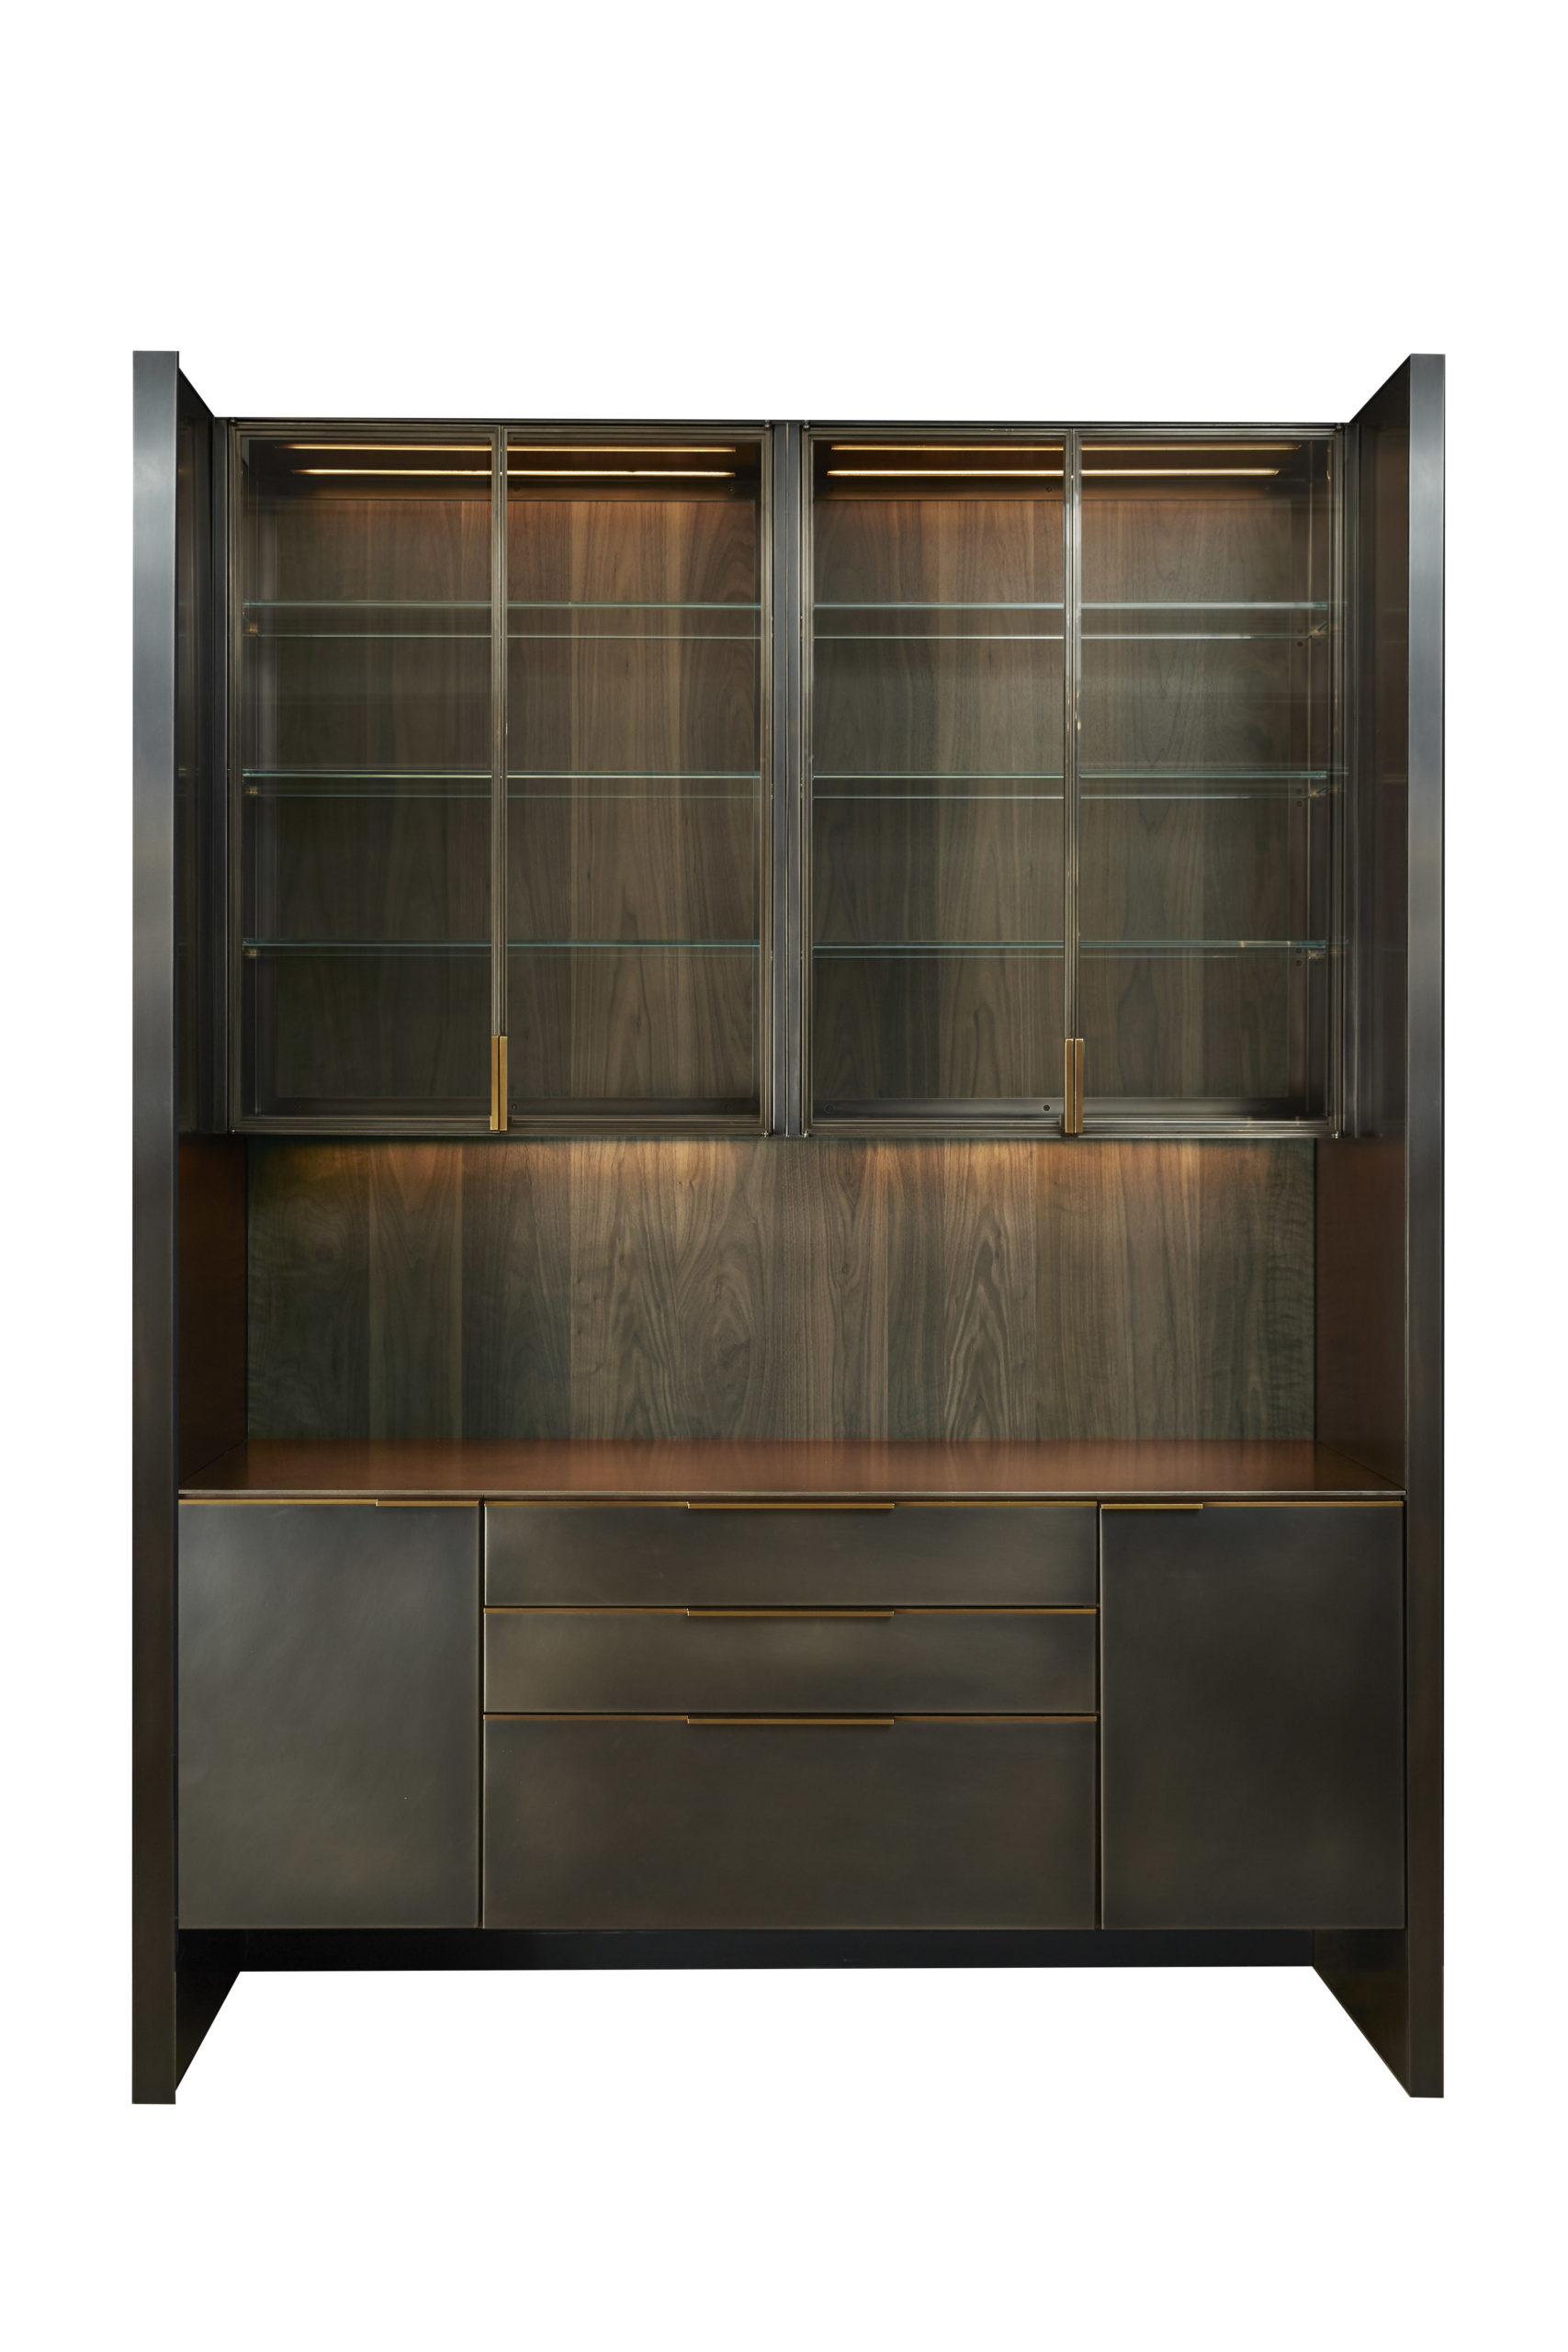 amuneal_products_WNWN_NYDC_1Blackened-Stainless-Bar-Front-Empty-Whited-Out_nycshowroom-scaled-1